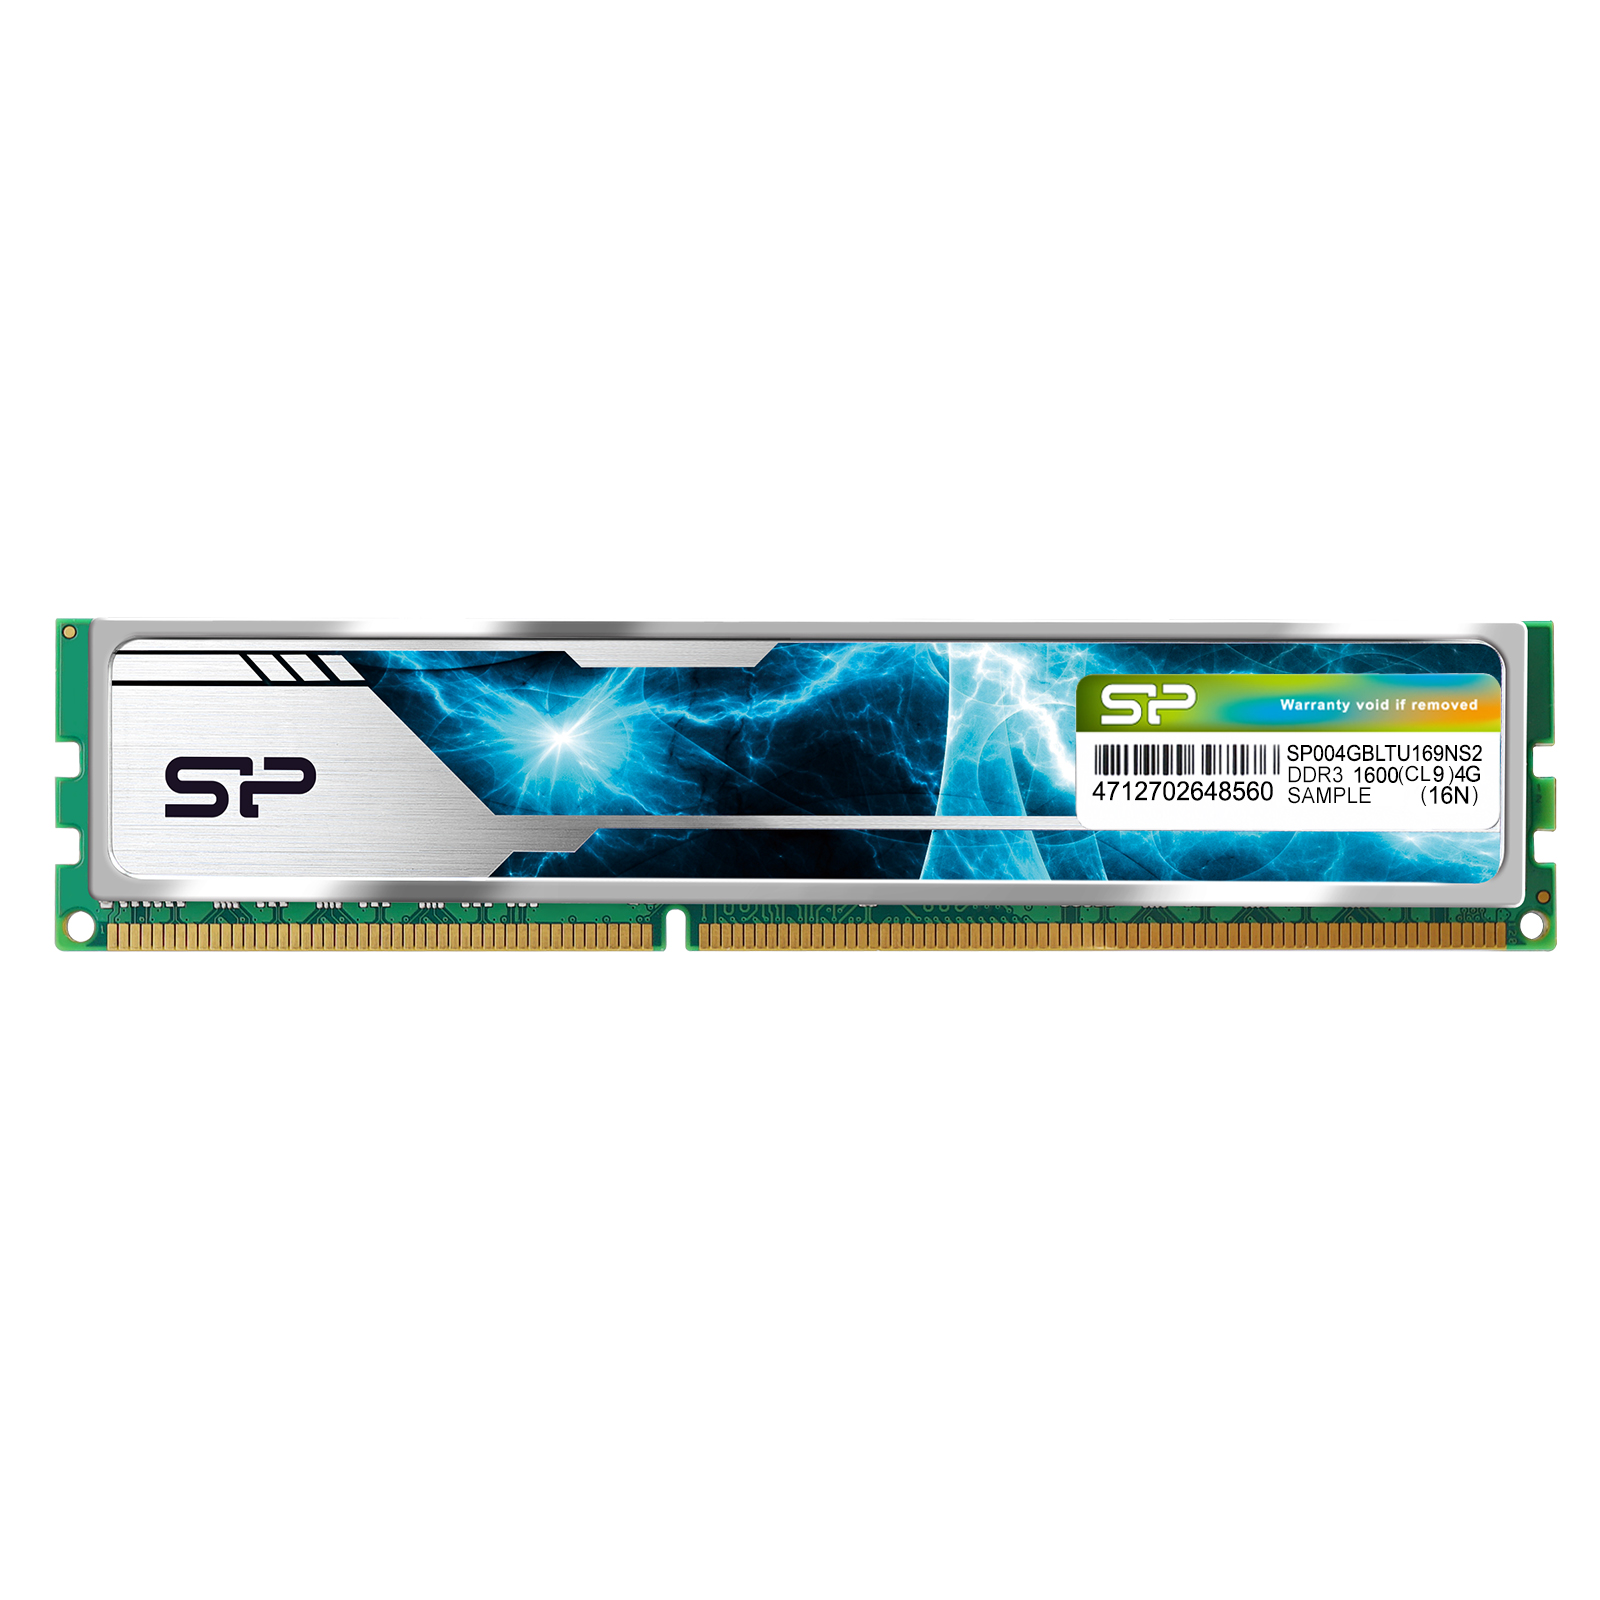 Pamięci RAM DDR3 Unbuffered DIMM (Heatsink)